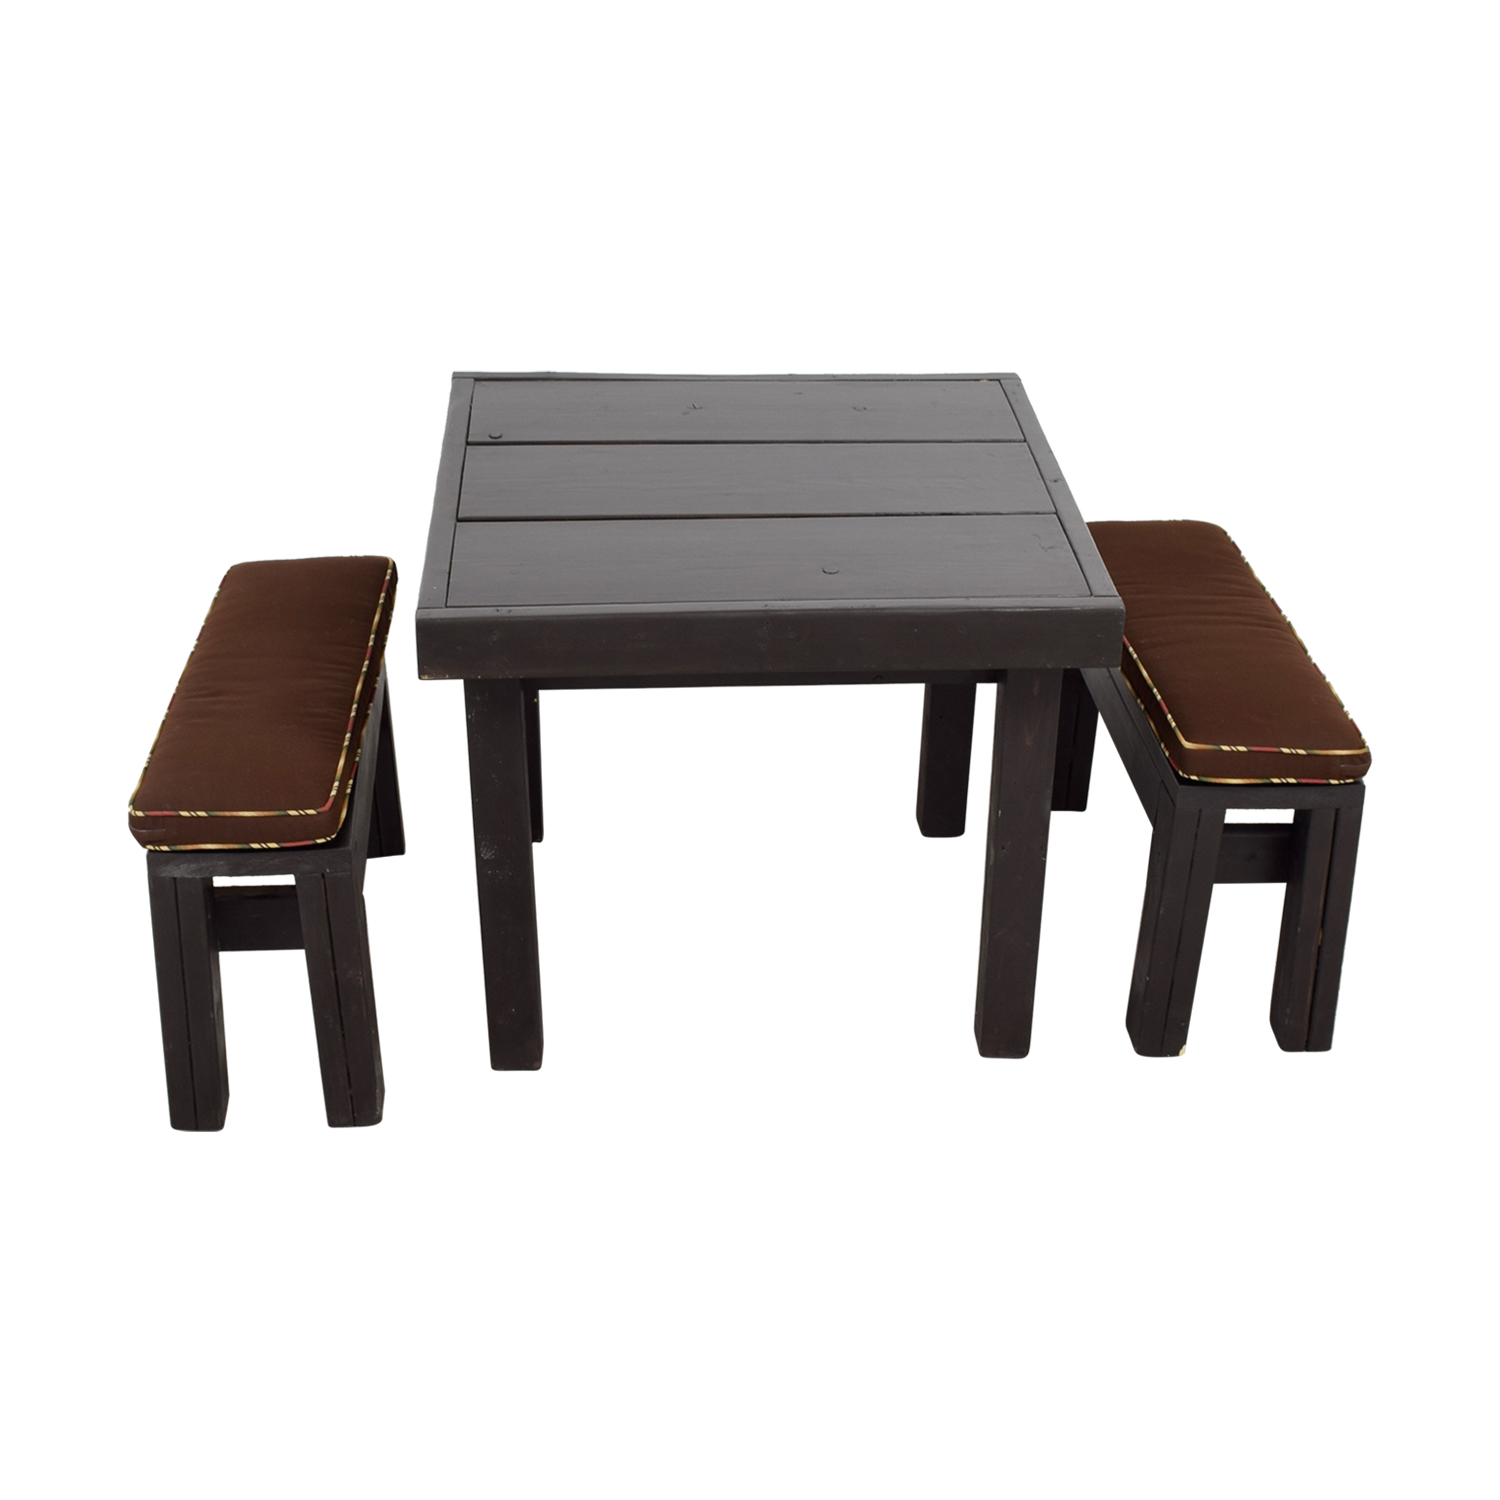 83 off ballard design ballard design modern rust table for Ballard designs bench seating